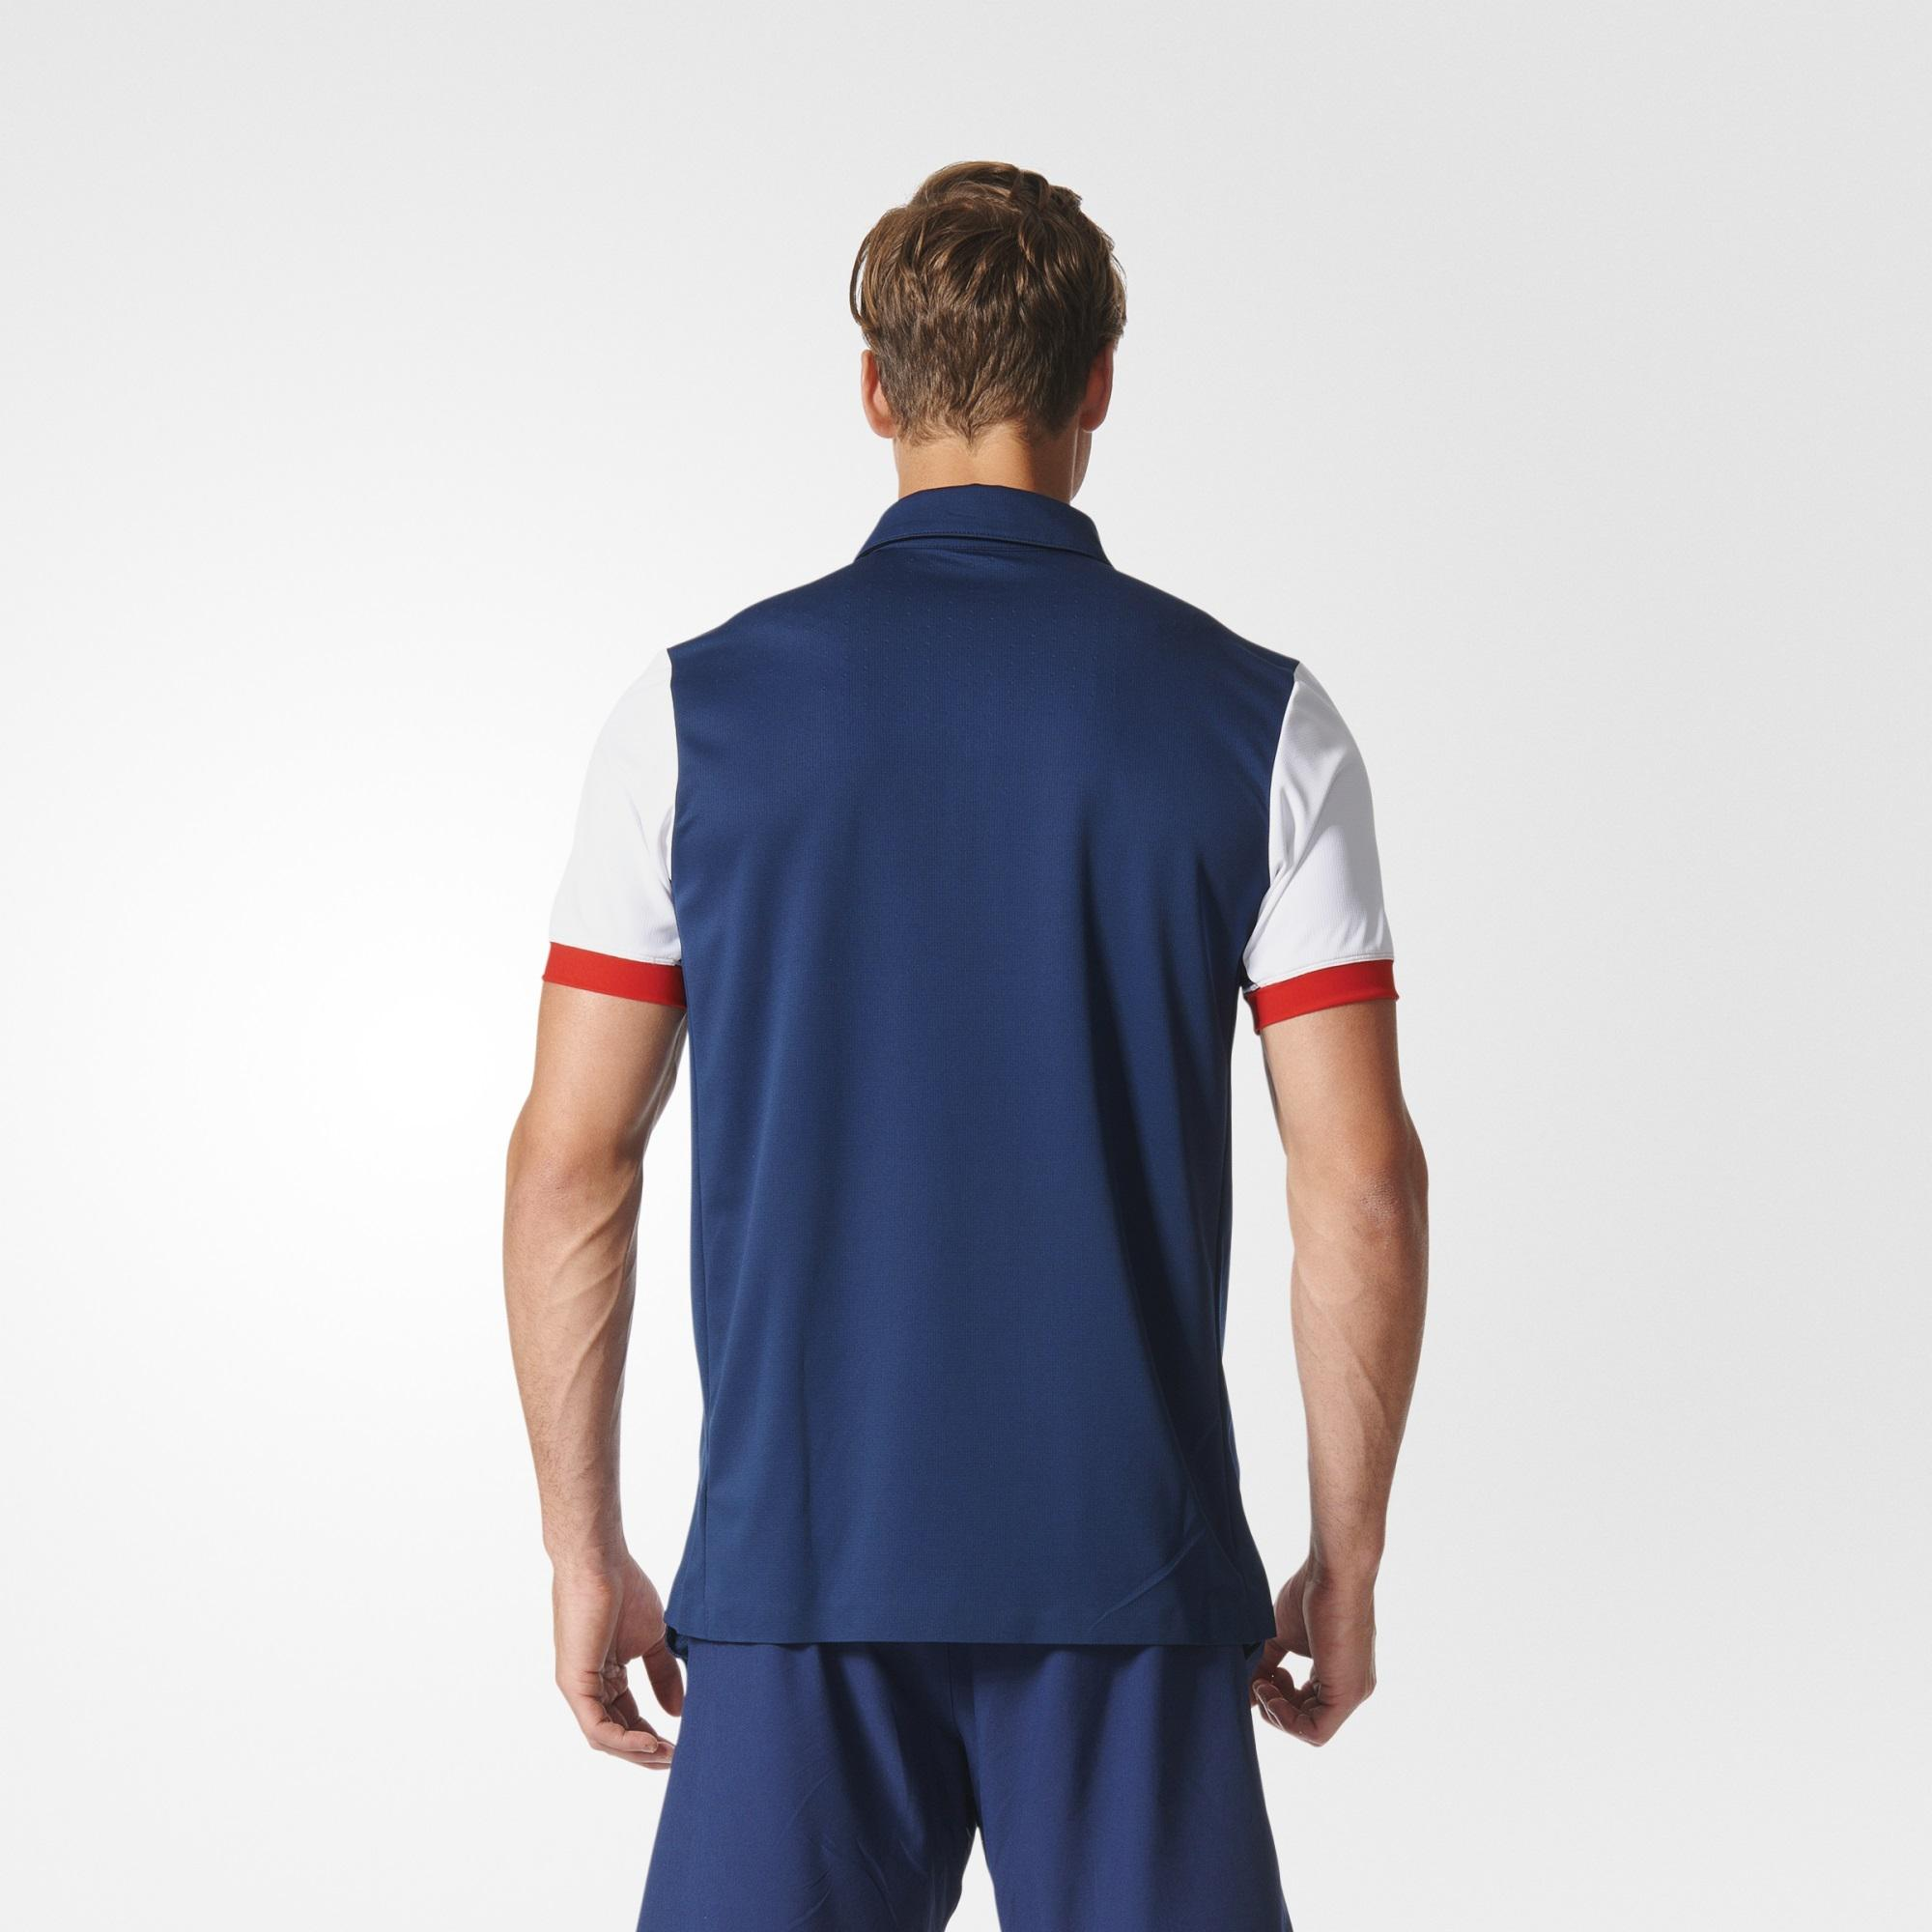 20%. Adidas Mens Rio 2016 Team GB Olympic Climachill Polo